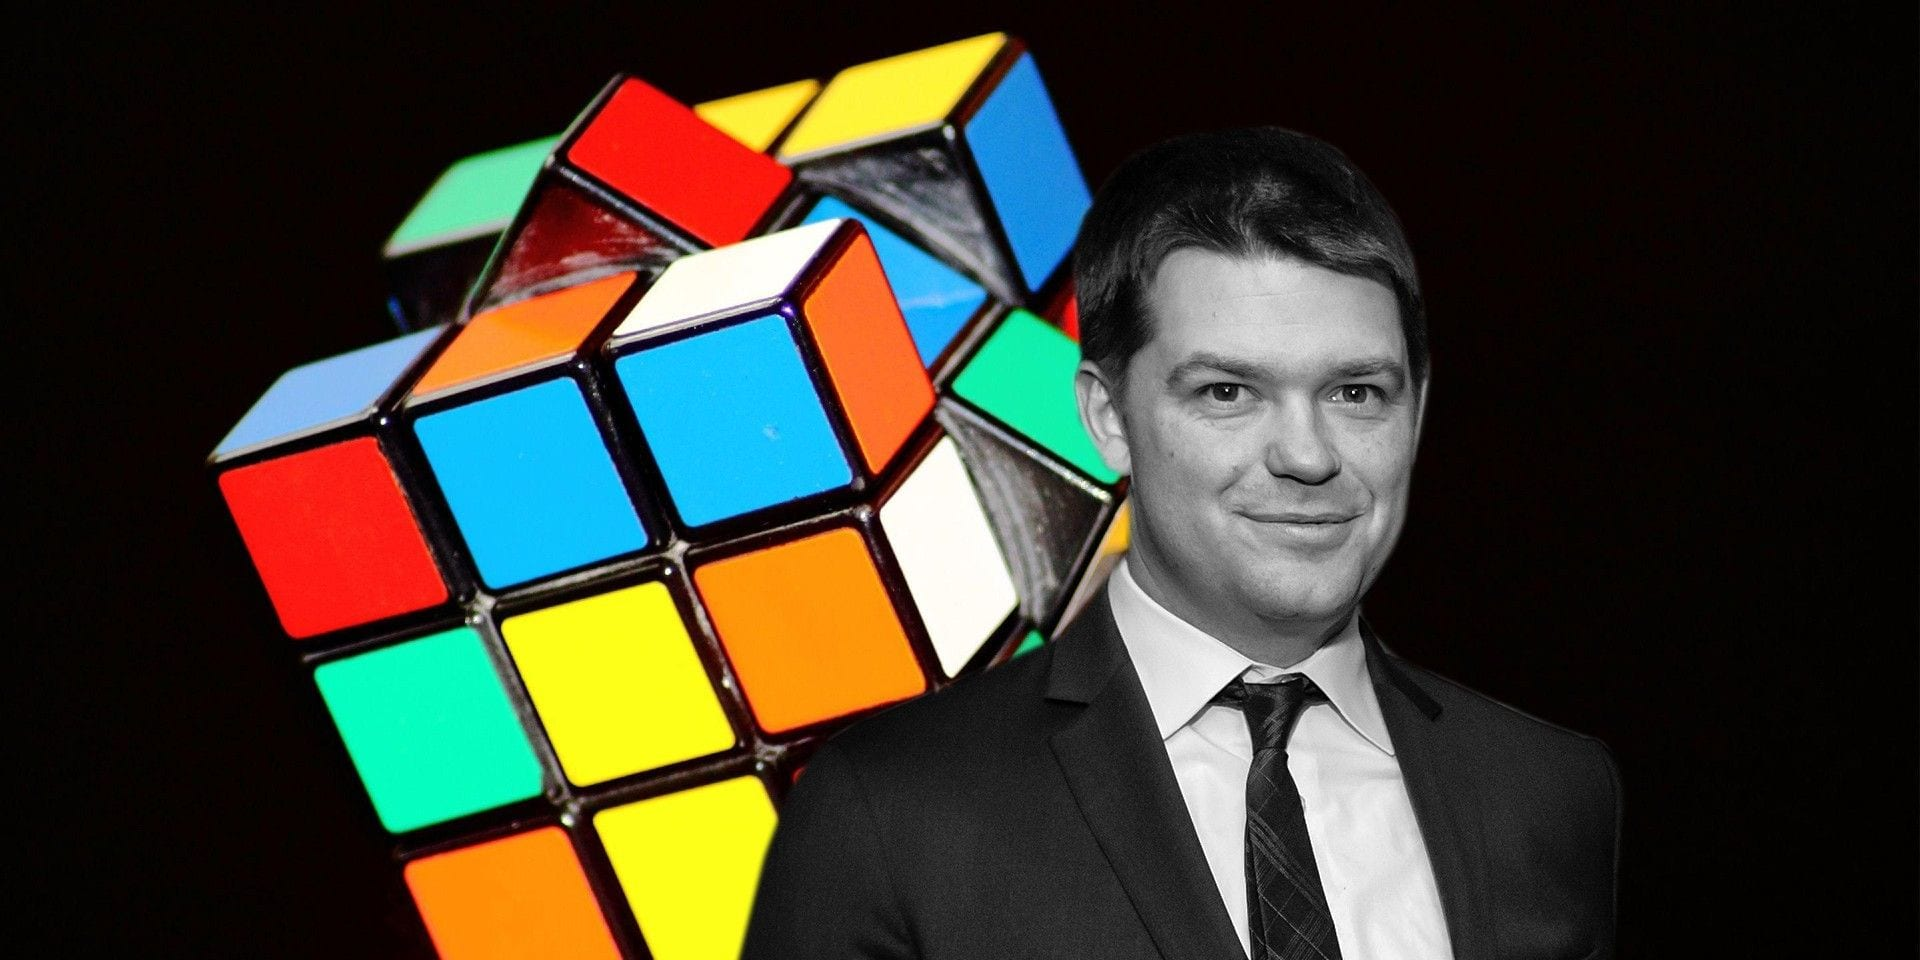 Chris Miller, dopo The LEGO Movie, farà un film sul Cubo di Rubik